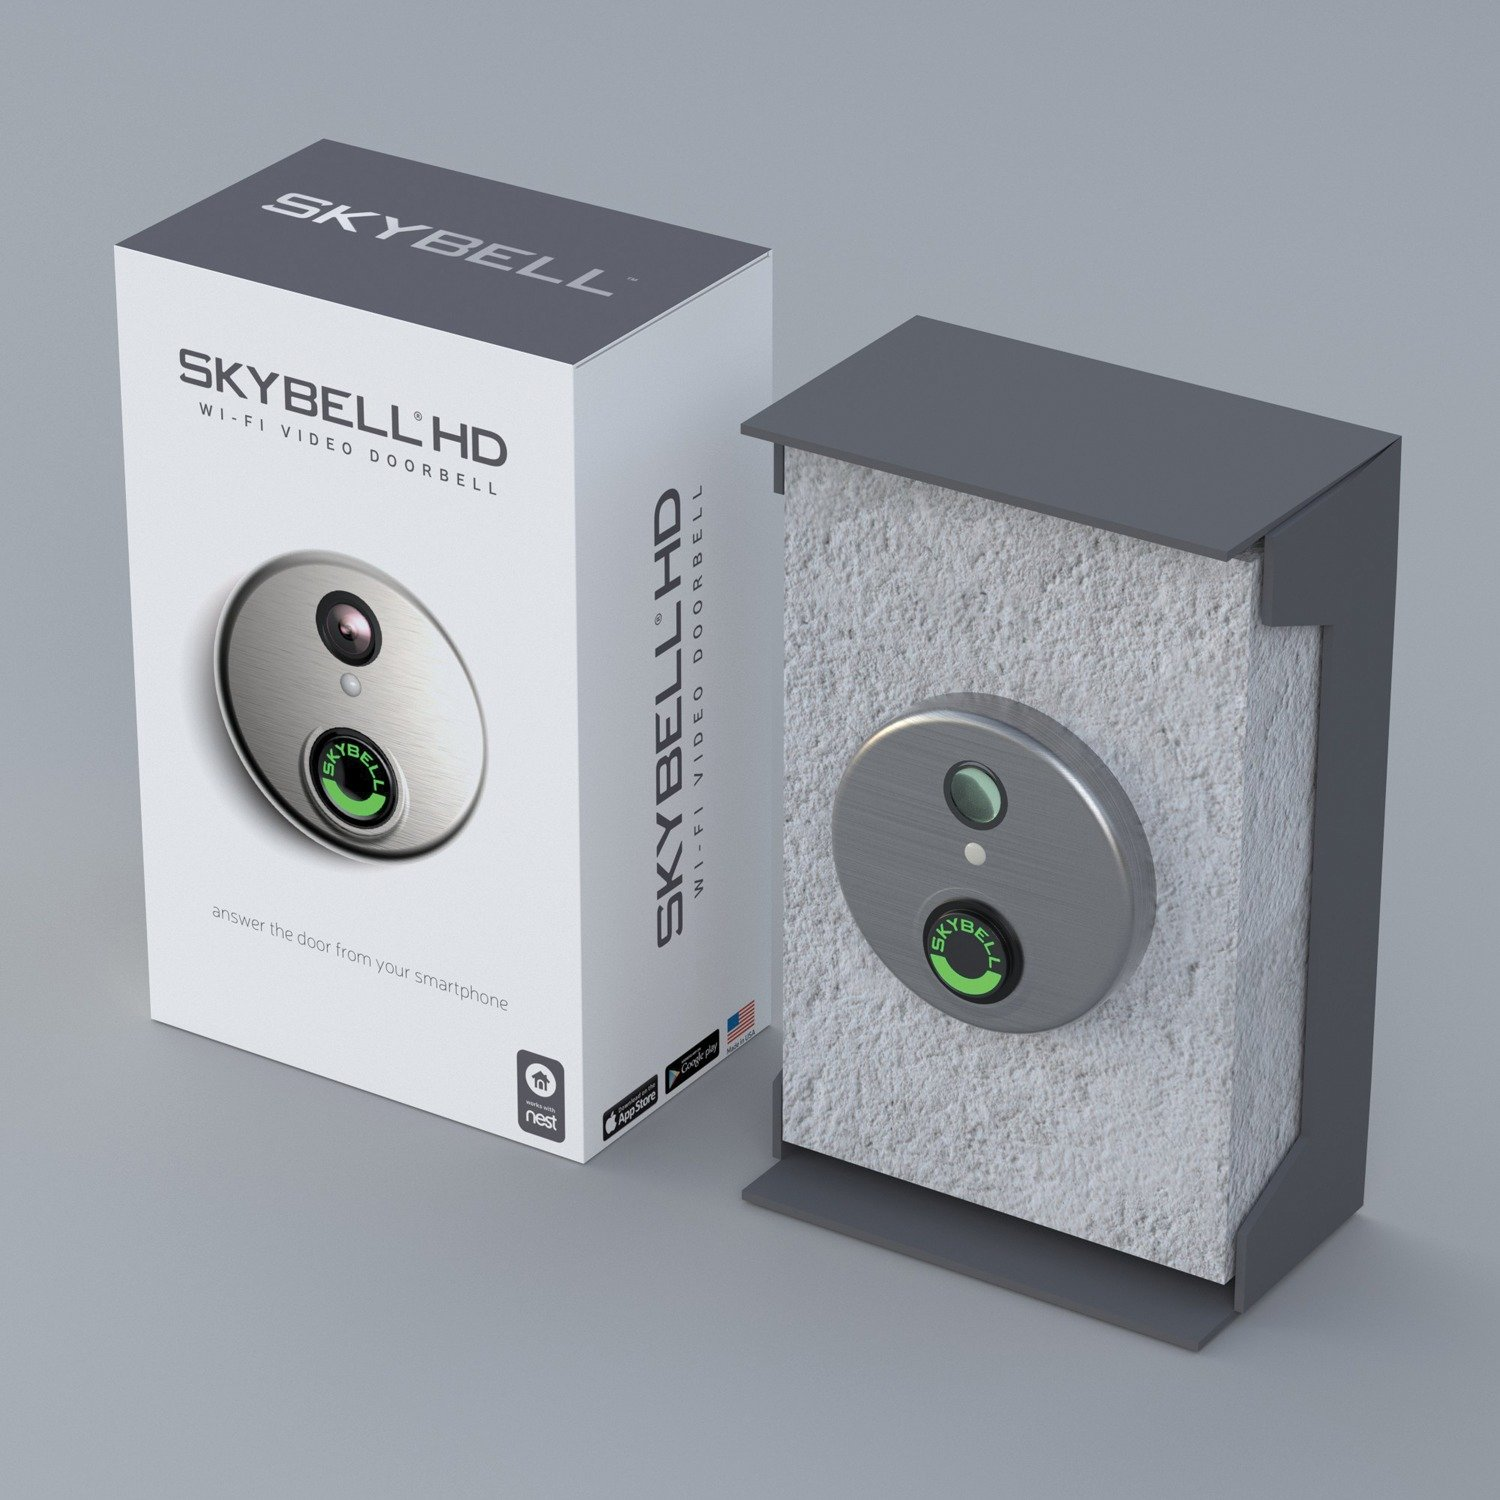 Skybell HD Video Doorbell Black Friday Deals